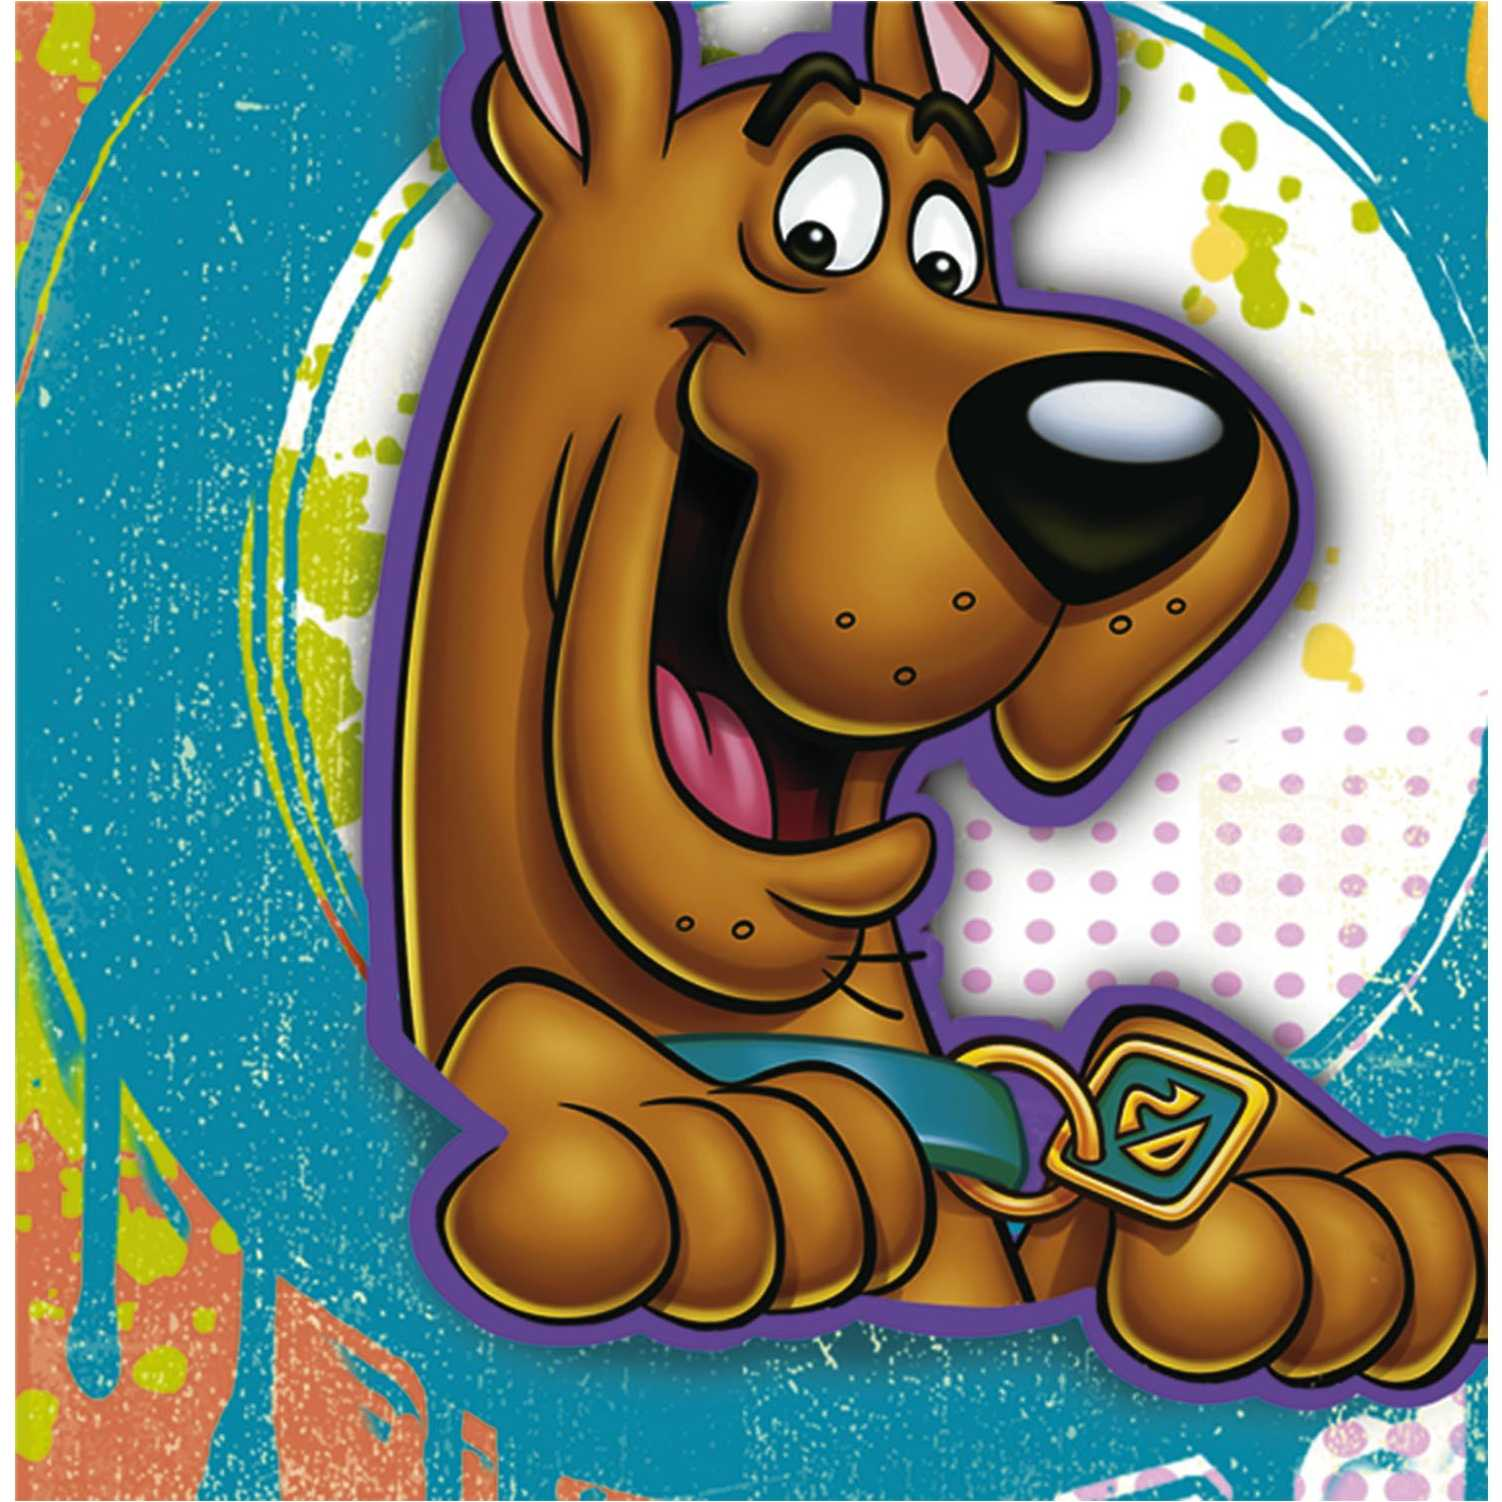 Download In Original Resolution Scooby Doo 2066585 Hd